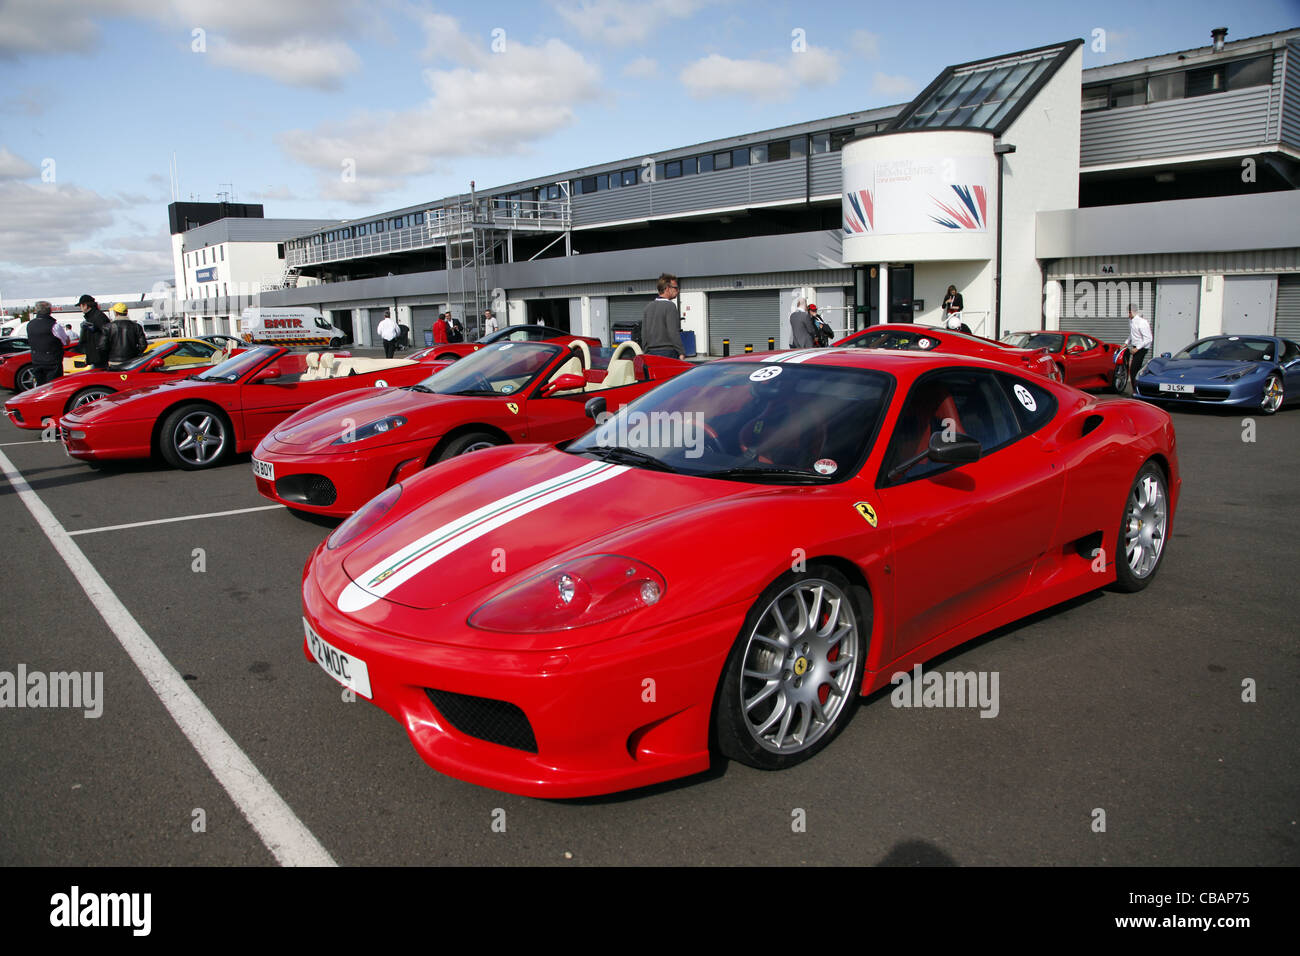 Red Ferrari 360 Challenge Stradale Car Silverstone Circuit England 14 Stock Photo Alamy